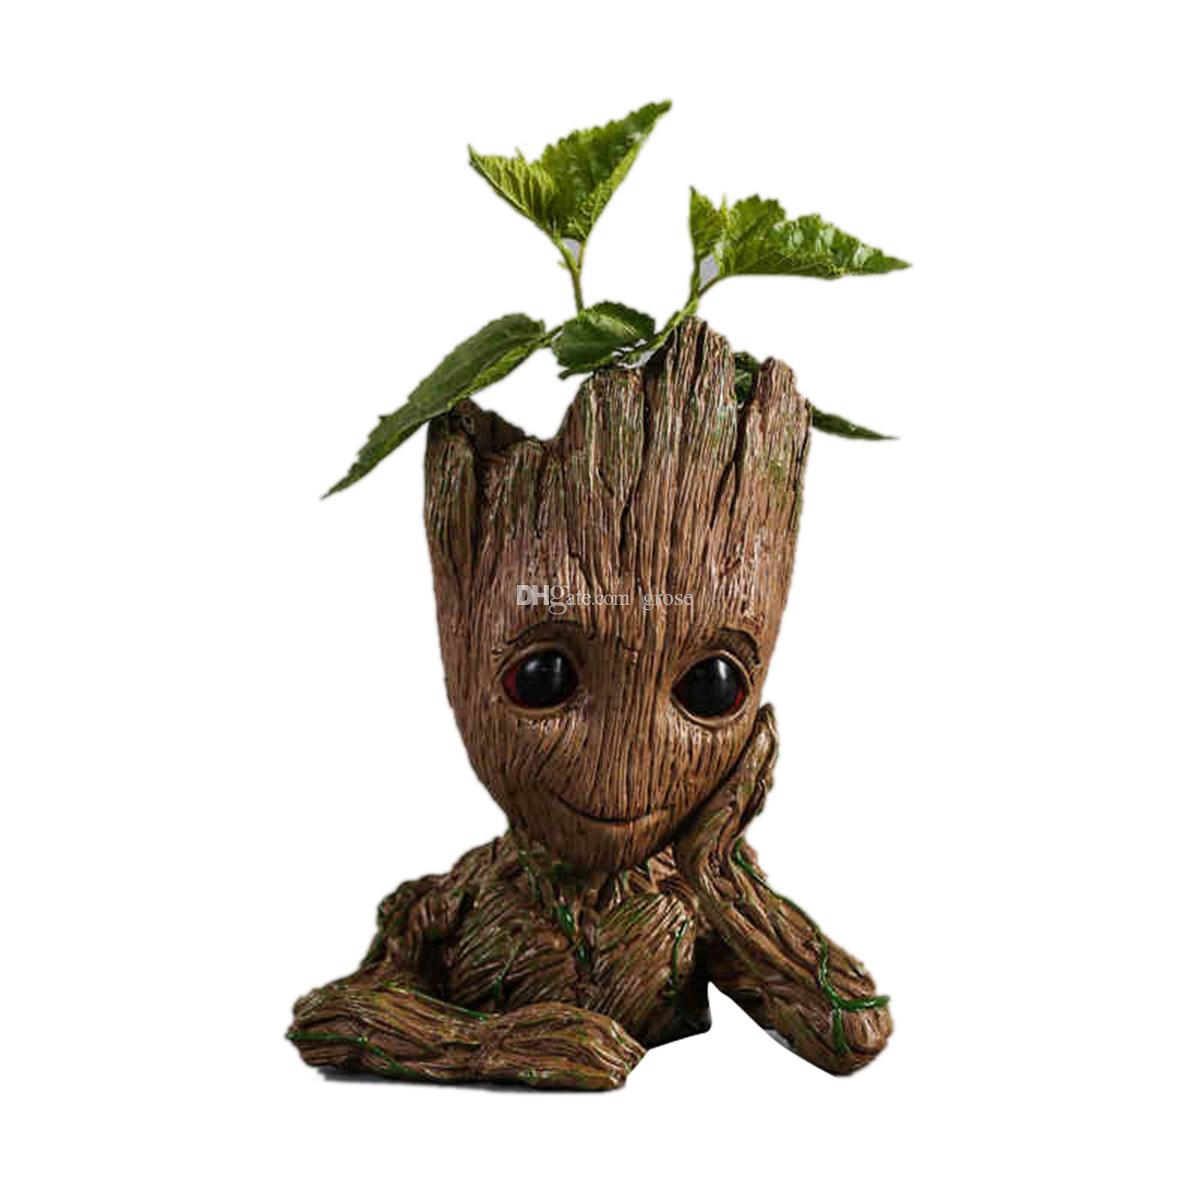 2019 New Fashion Guardians Of The Galaxy Flowerpot Baby Groot Action Figures Cute Model Toy Pen Pot Best Christmas Gifts For Kids 0701040 From Grose